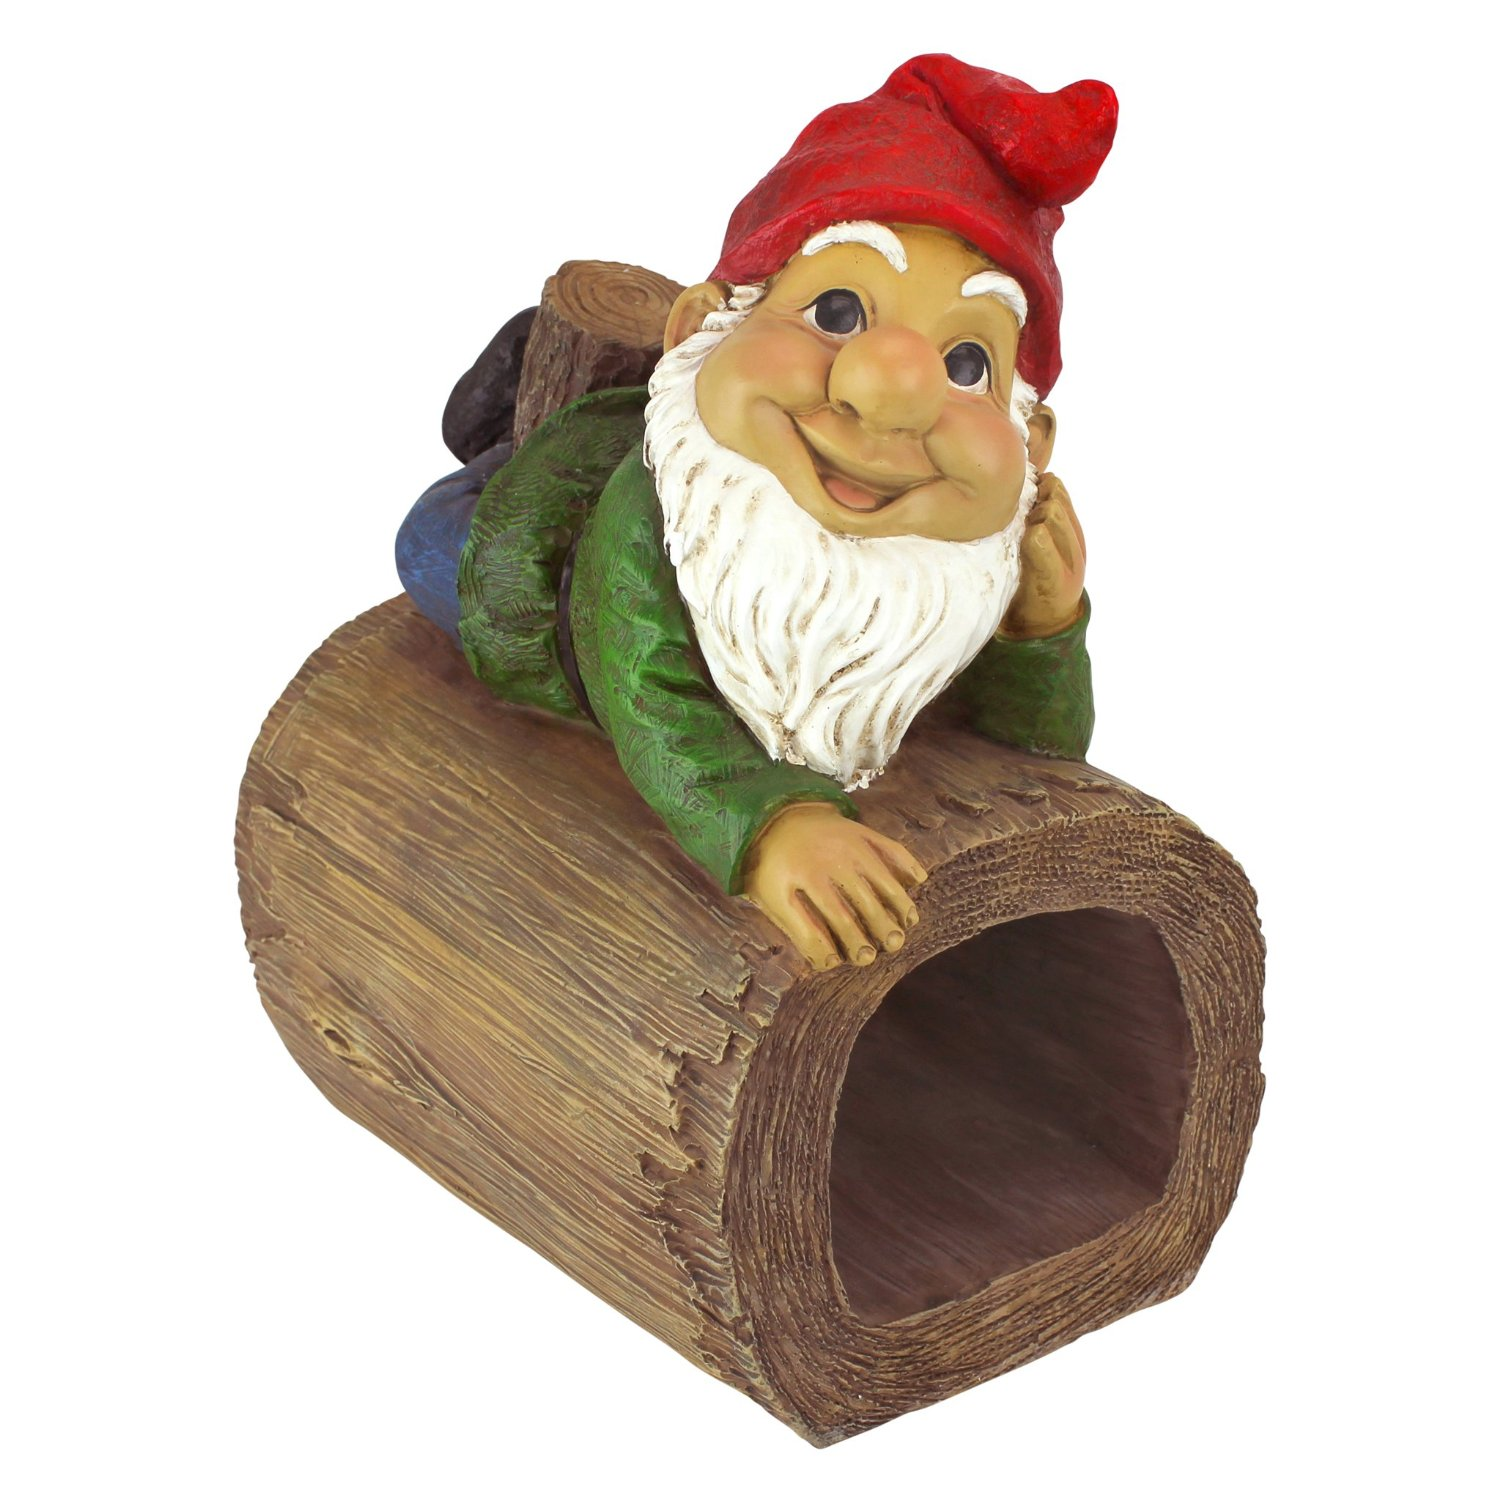 Buy Garden Gnome Statue - Stormy the Gnome - Gnome Downspout ...